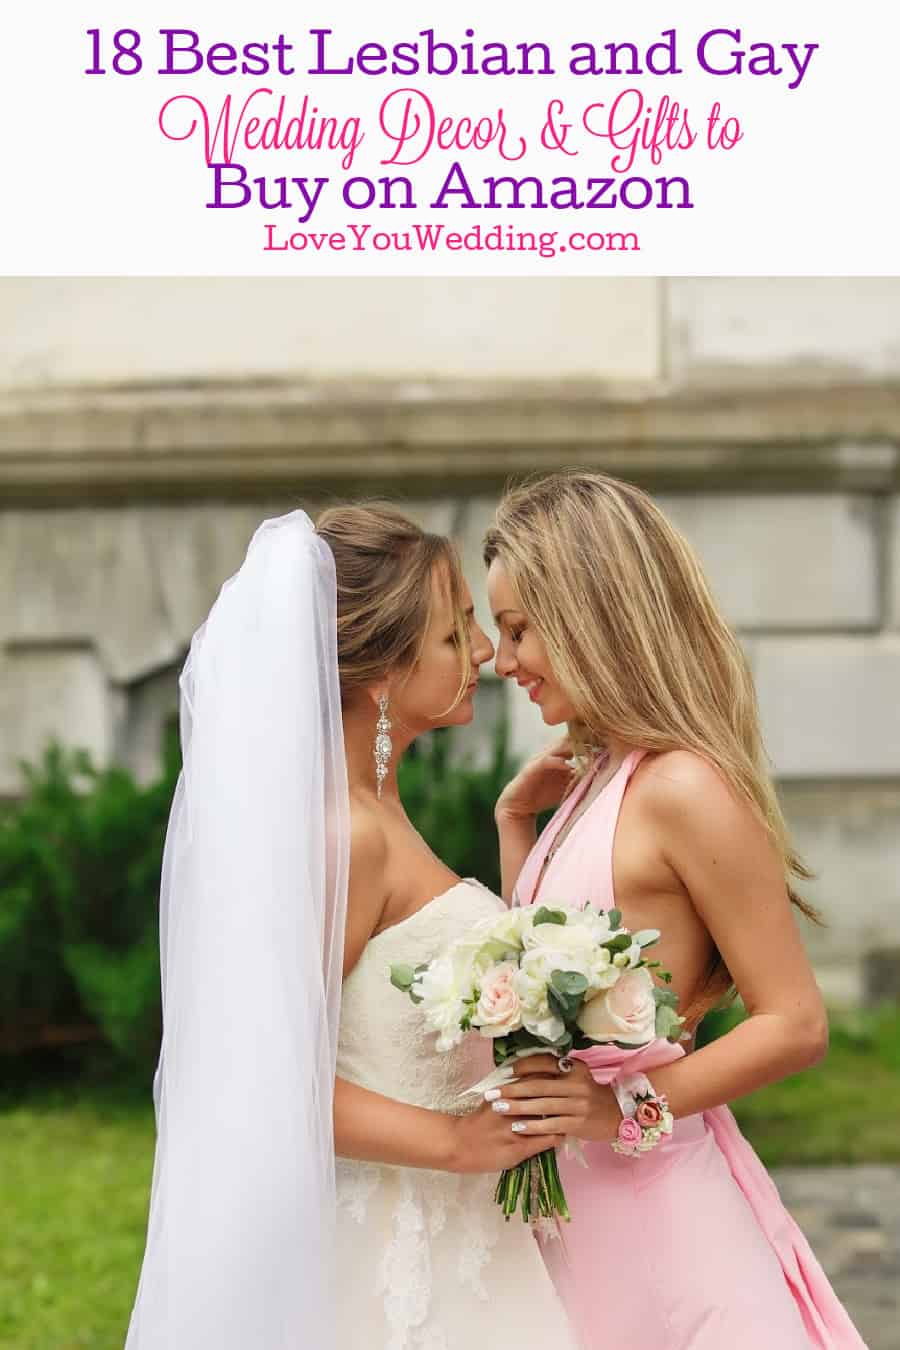 From planners to décor to gifts, we rounded up all the best lesbian and gay wedding things to buy on Amazon. Take a peek!